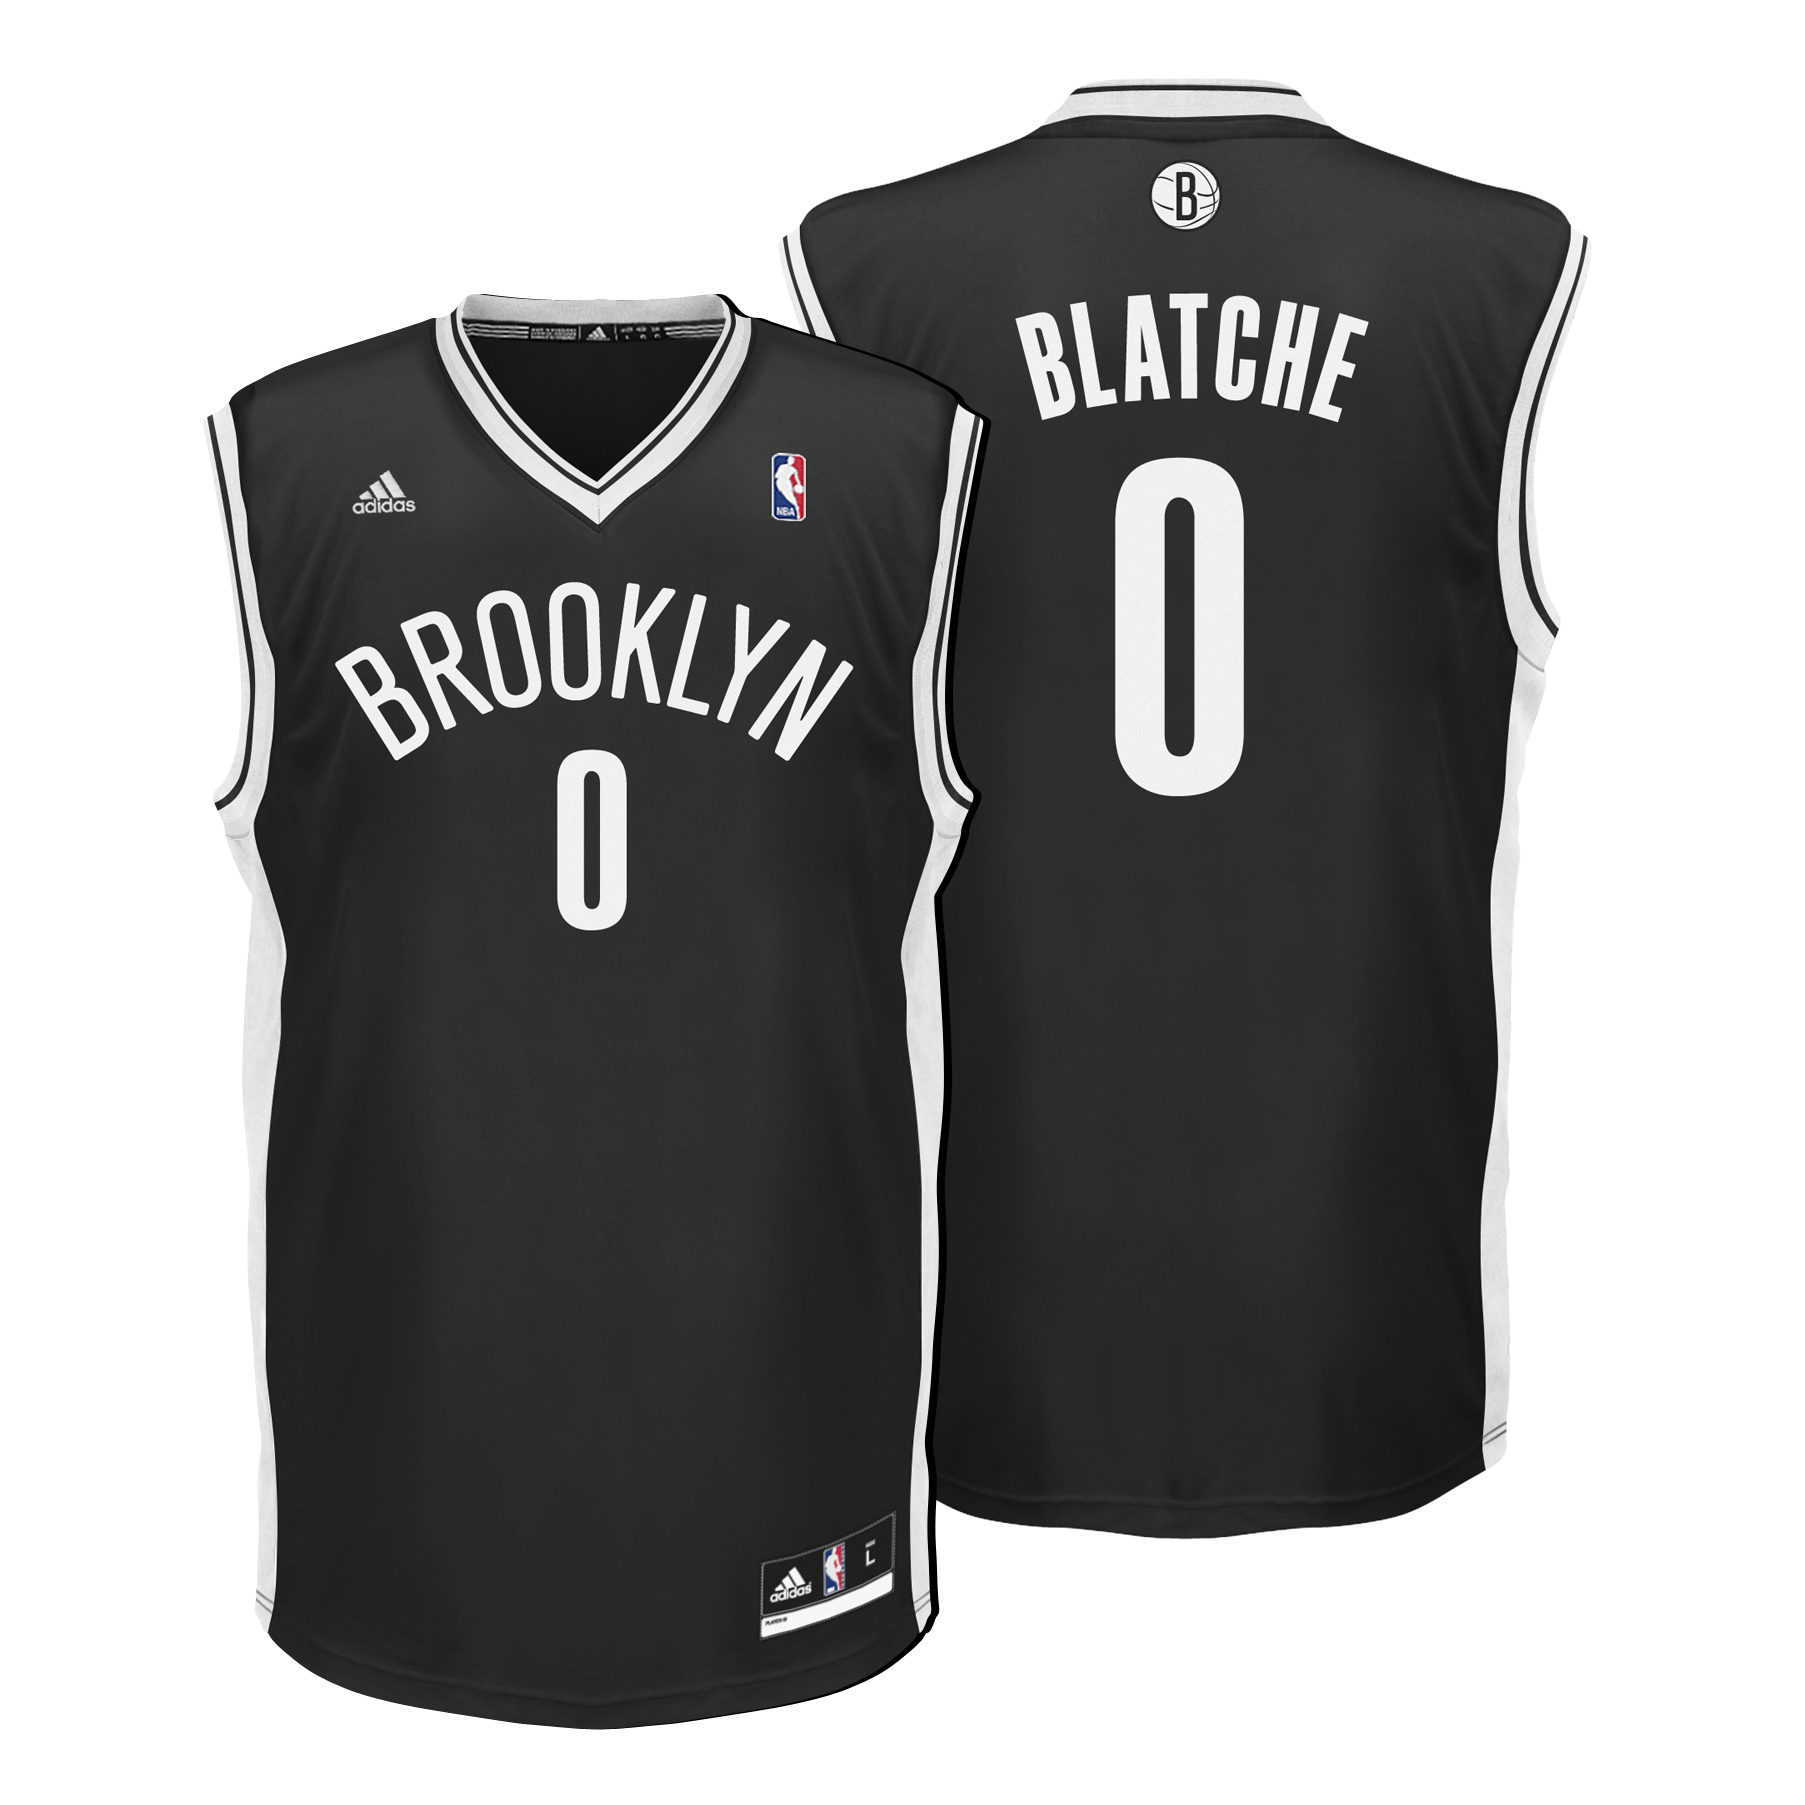 Brooklyn Nets Road Replica Jersey - Andray Blatche - Mens